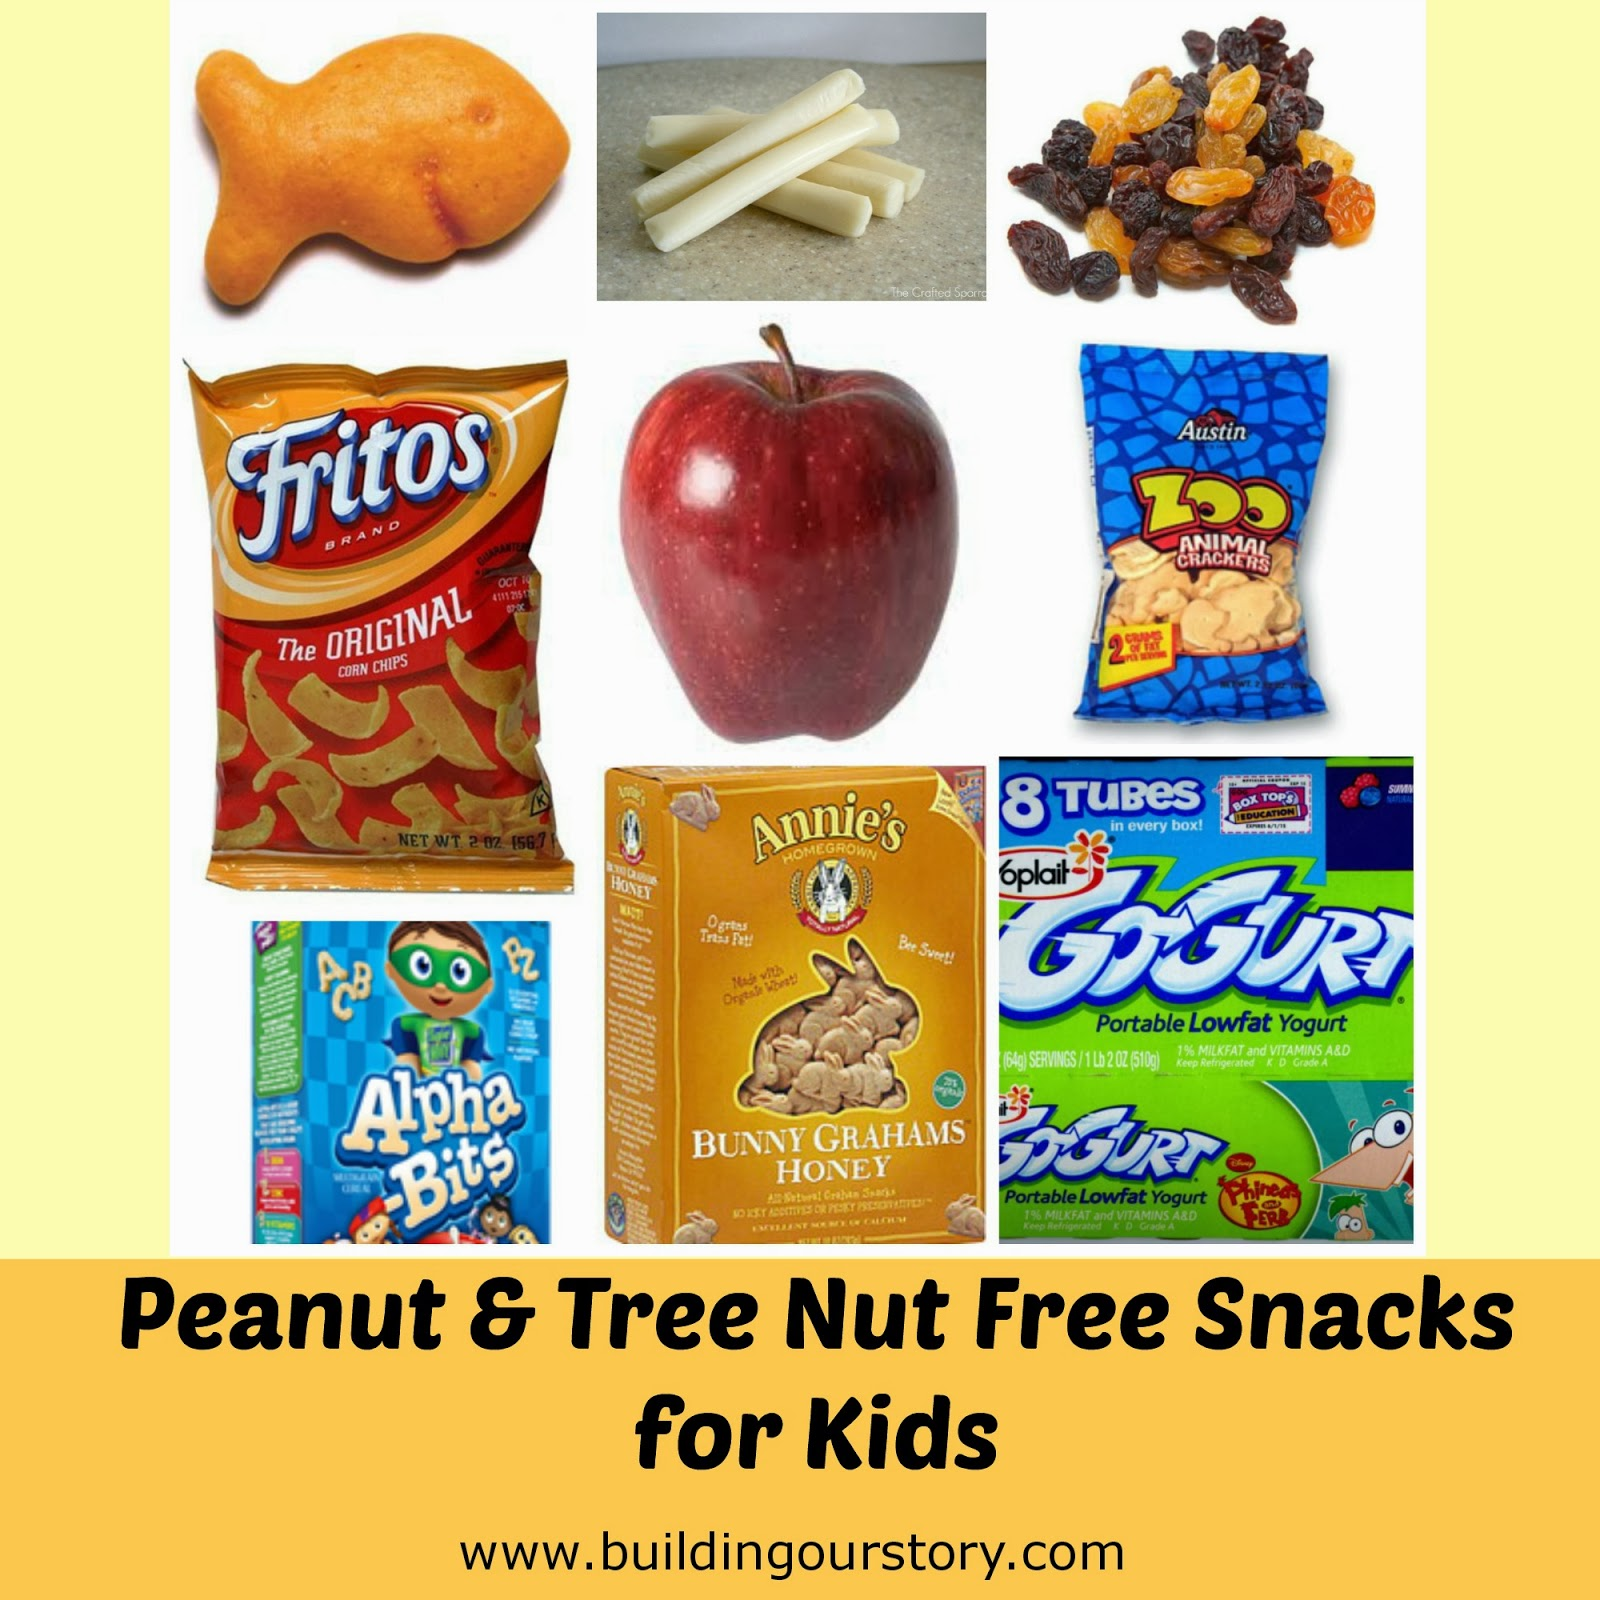 Peanut Free Snack Ideas | Building Our Story